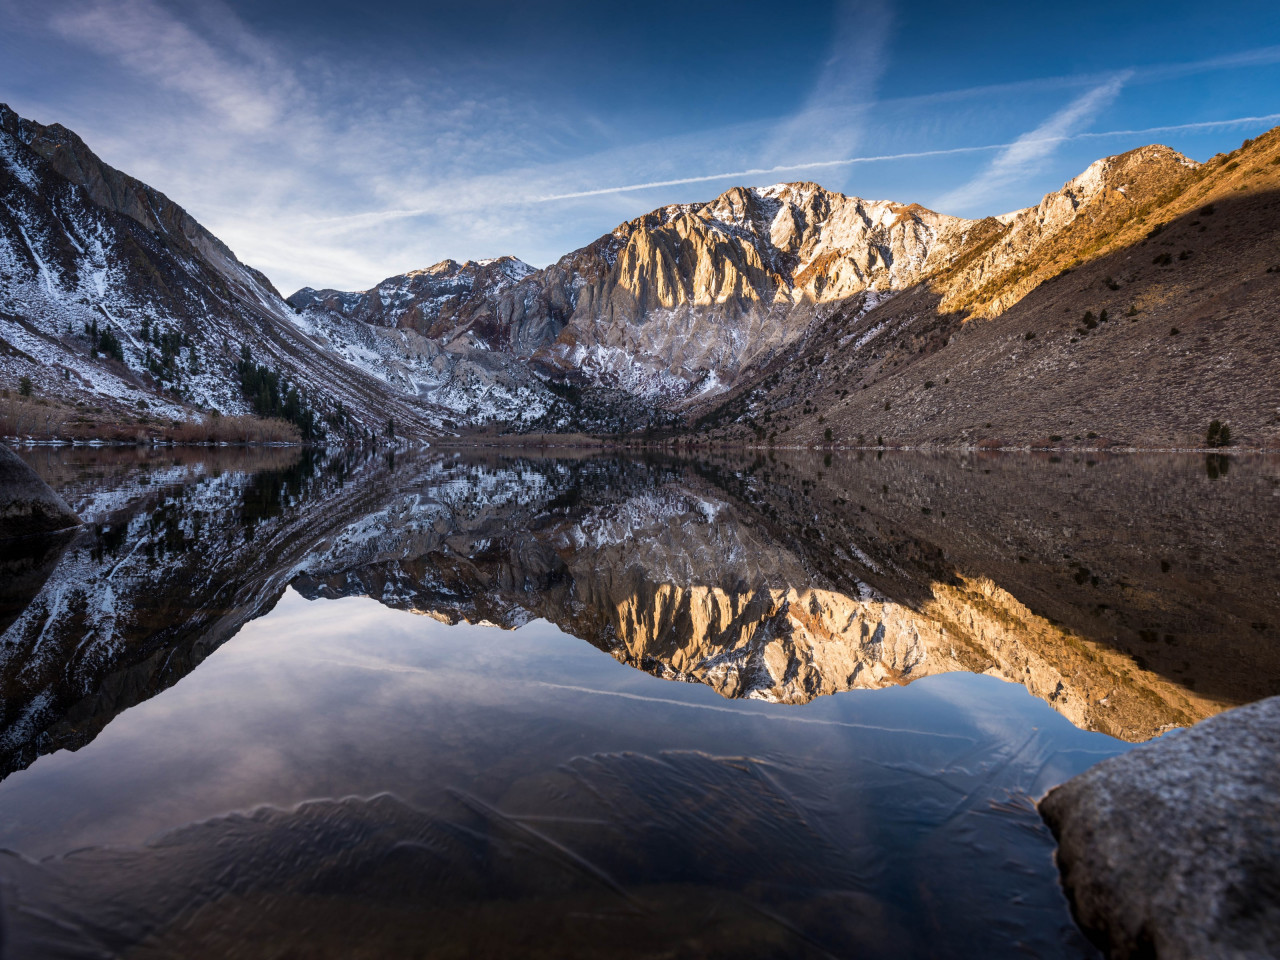 Convict lake began to freeze | 1280x960 wallpaper